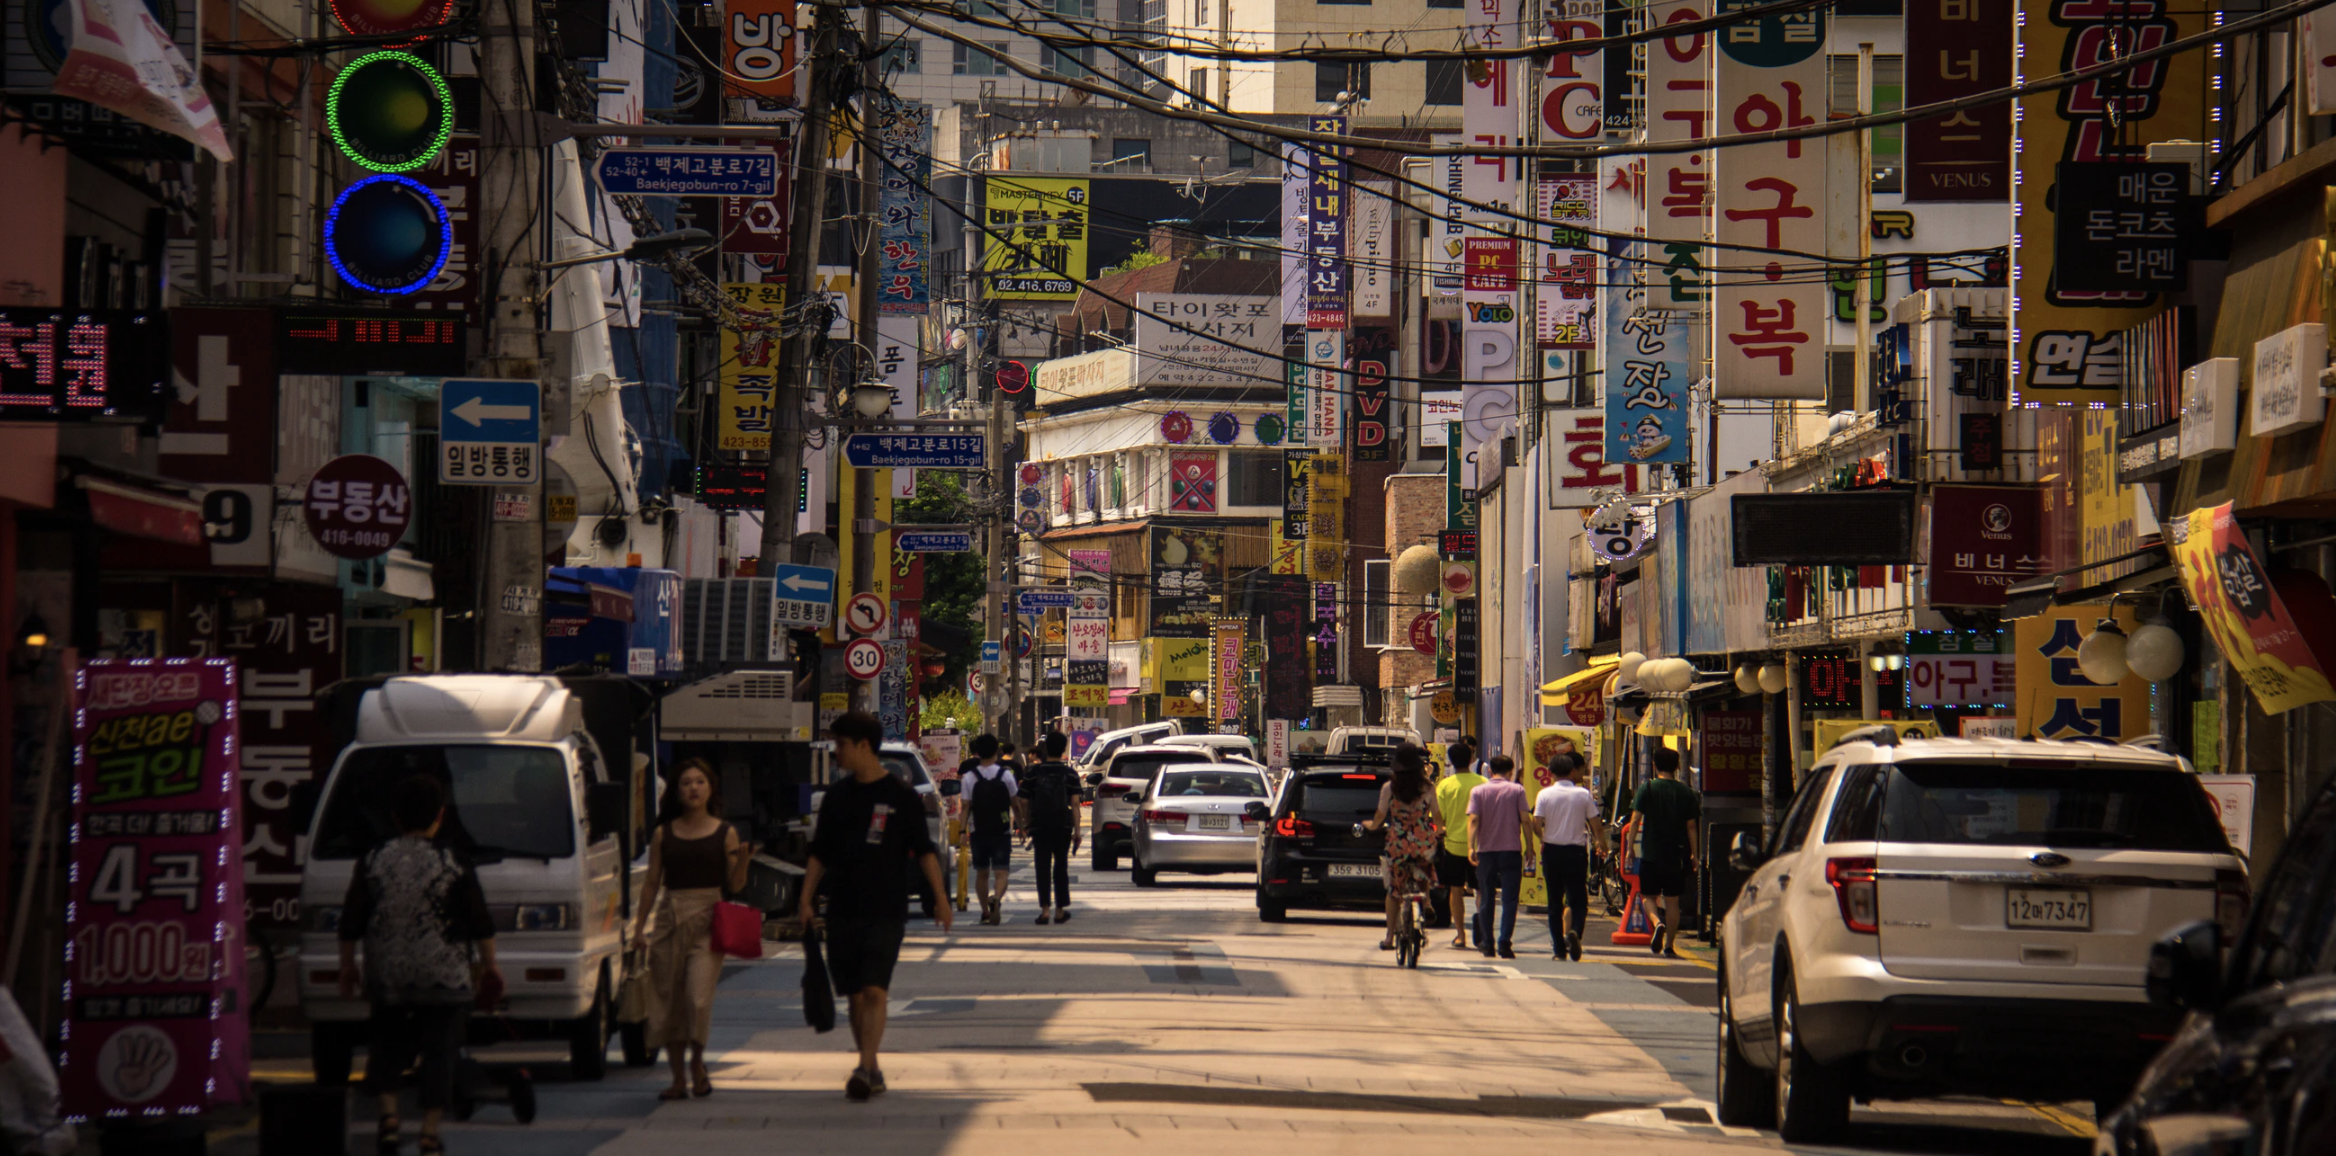 Singapore has advised public to avoid non-essential travel to Daegu city and Cheongdo county in South Korea. Photo courtesy: unsplash